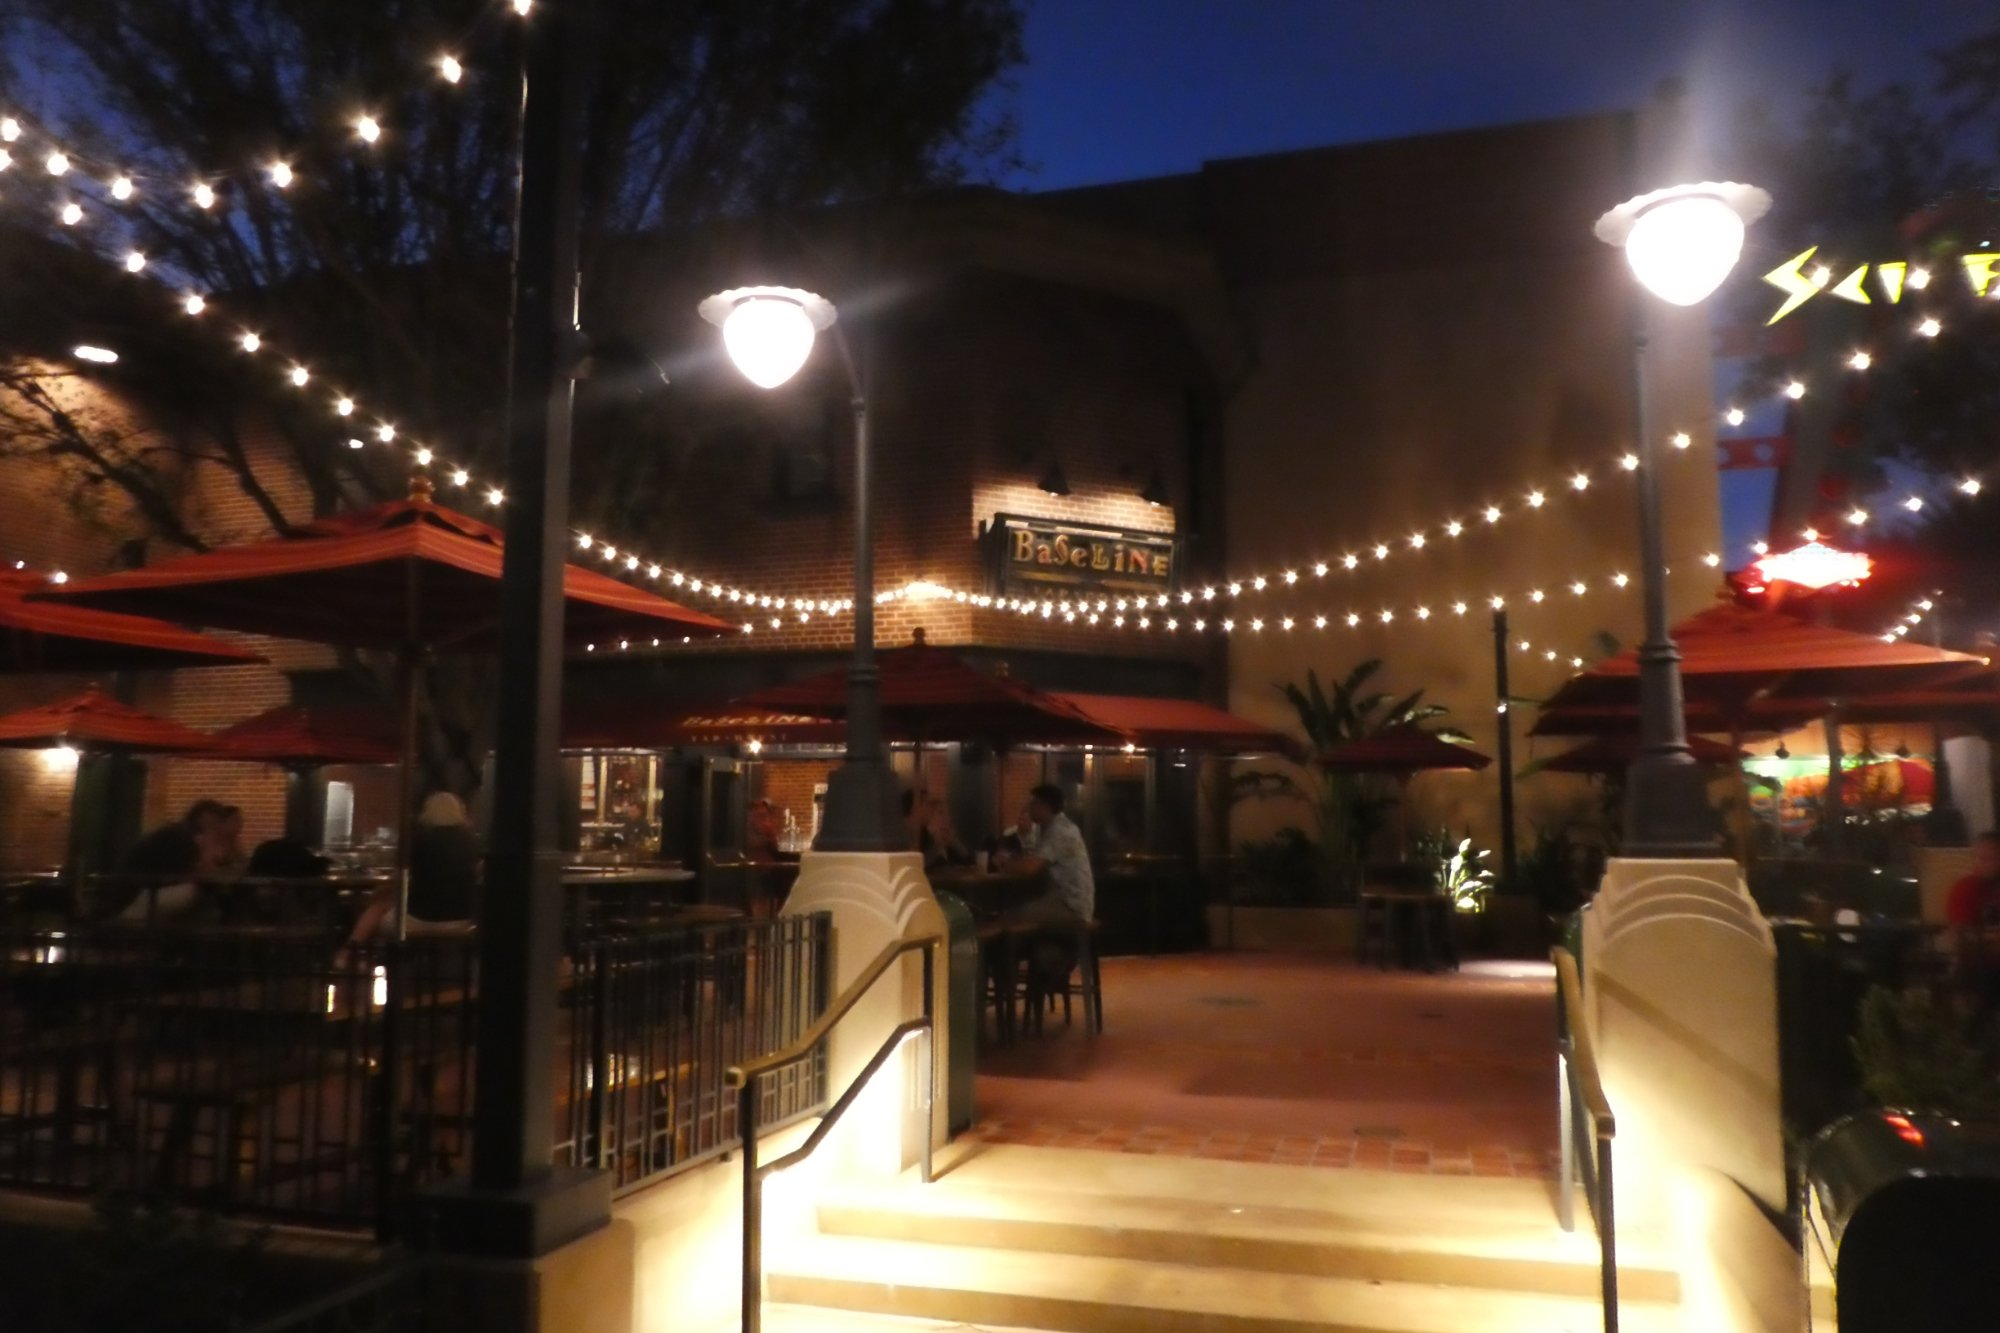 Another Baseline Tap House at night